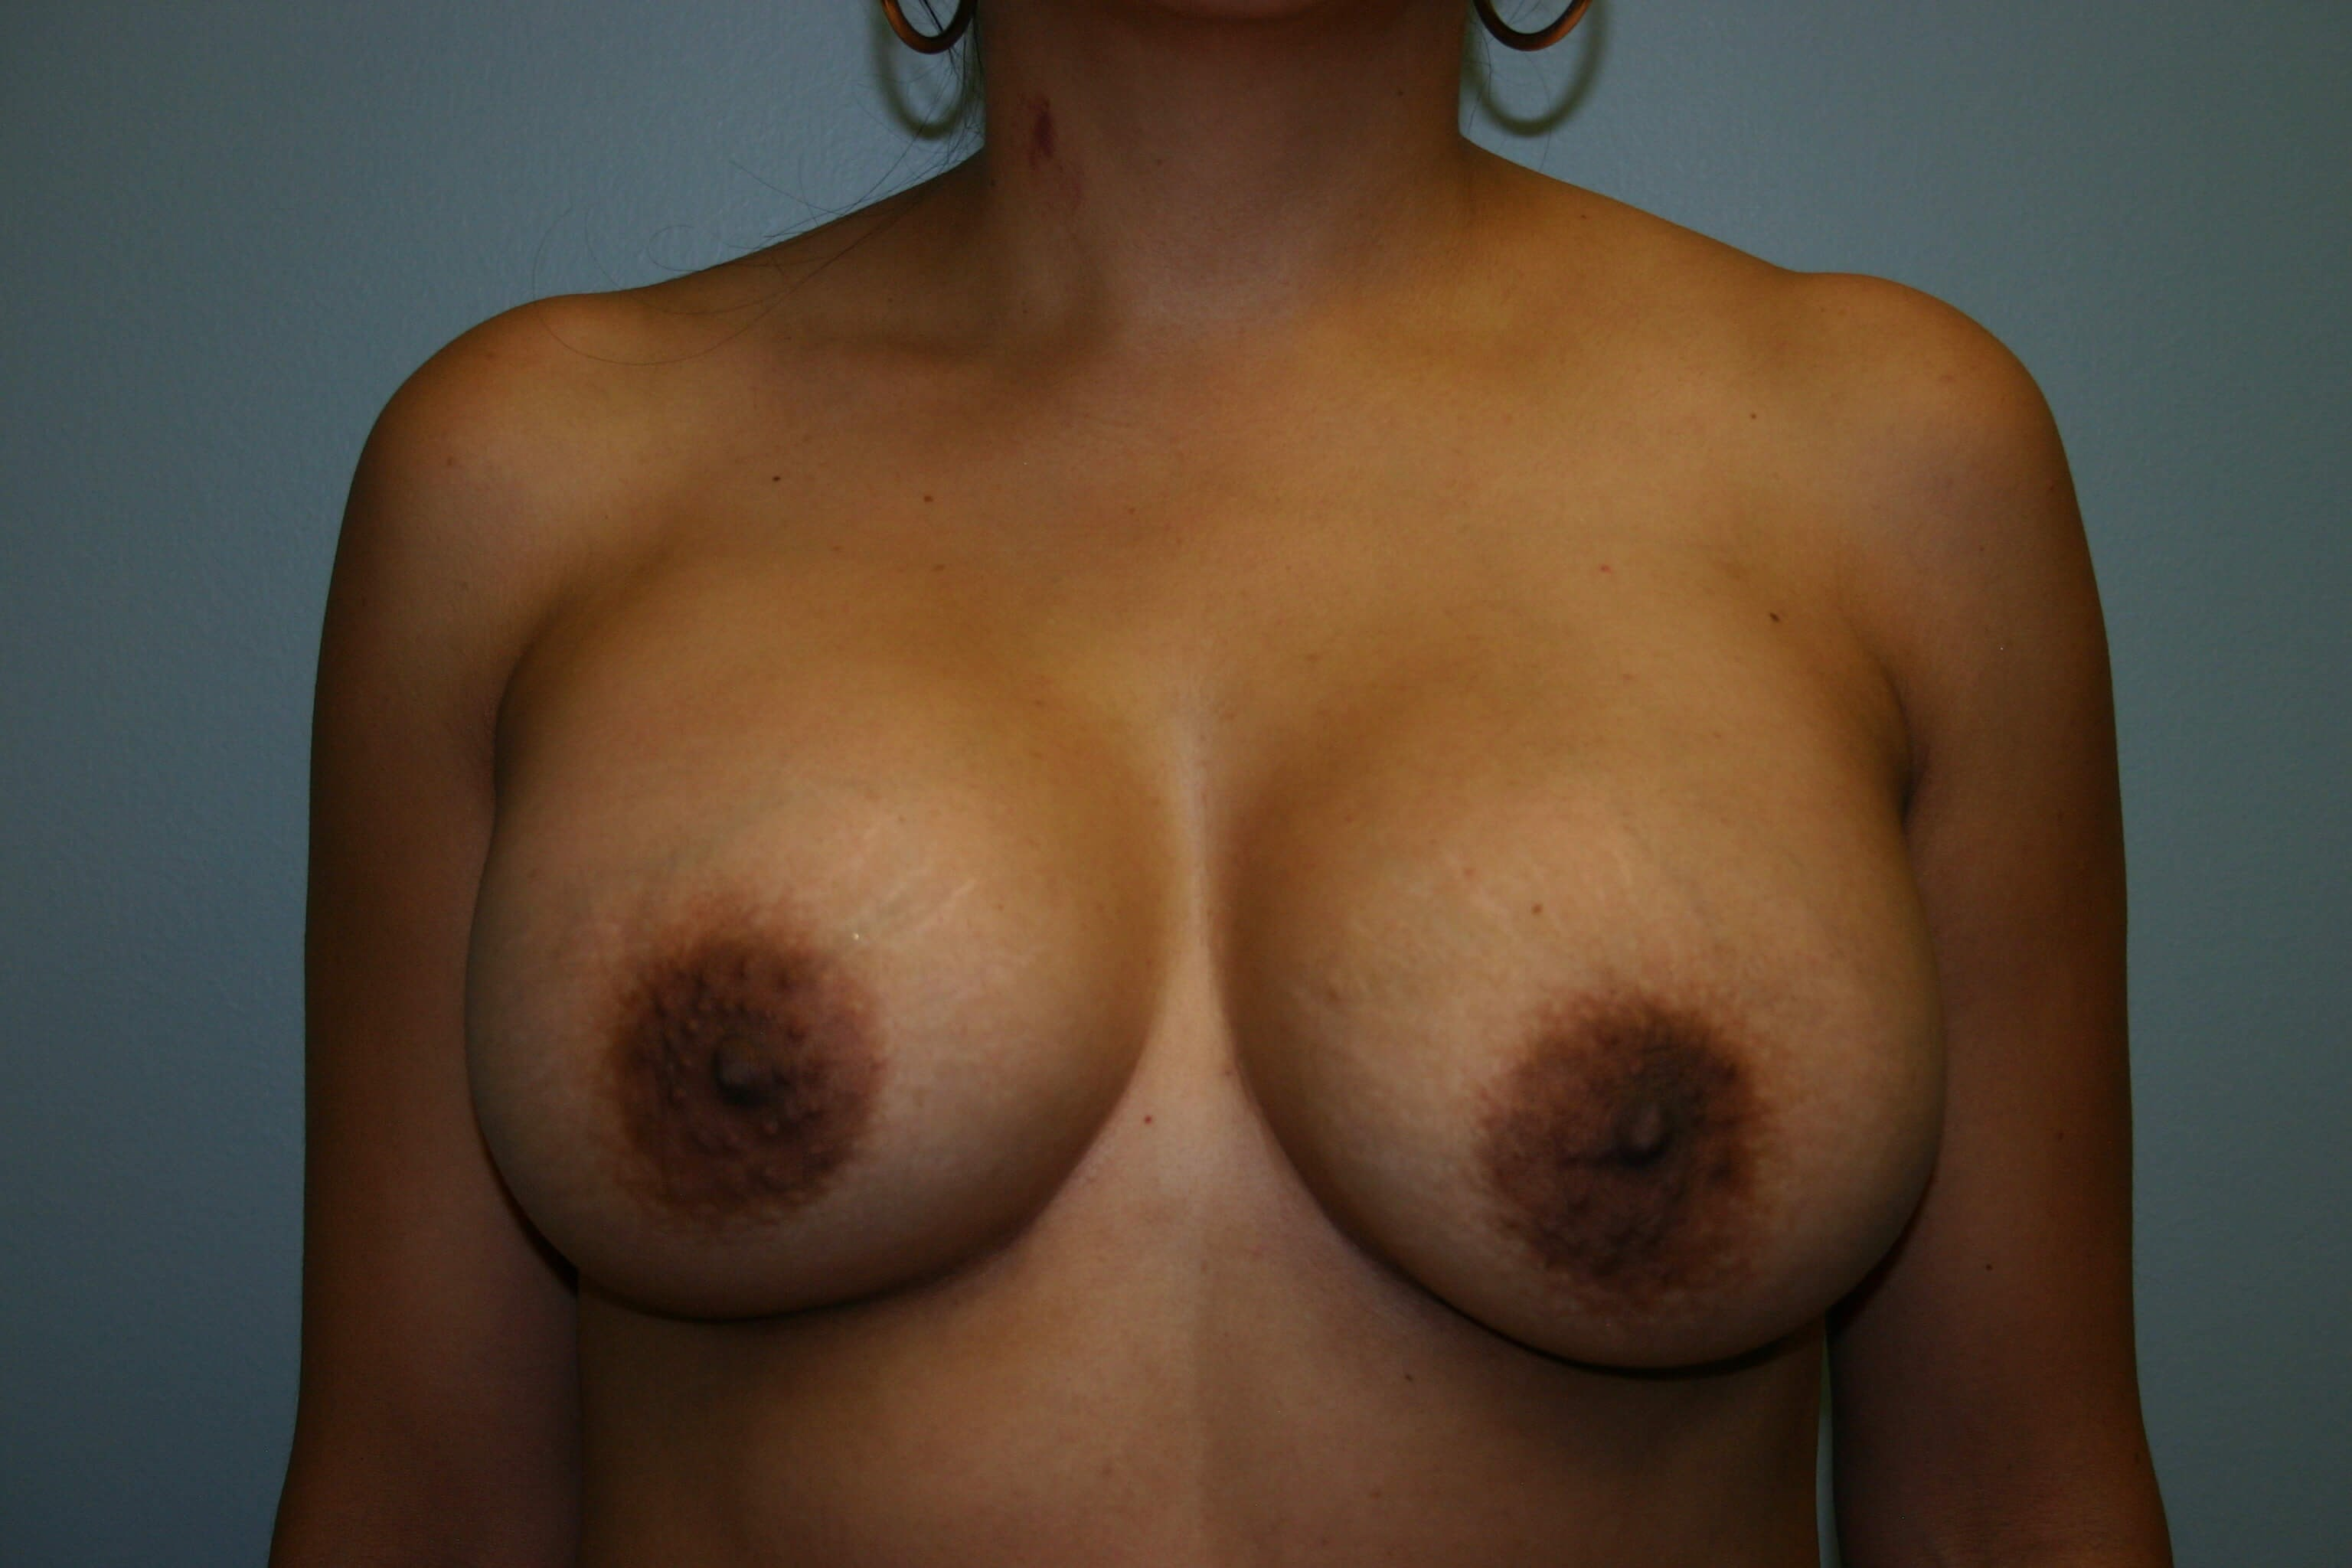 6 Months Post-Op Breast Aug After